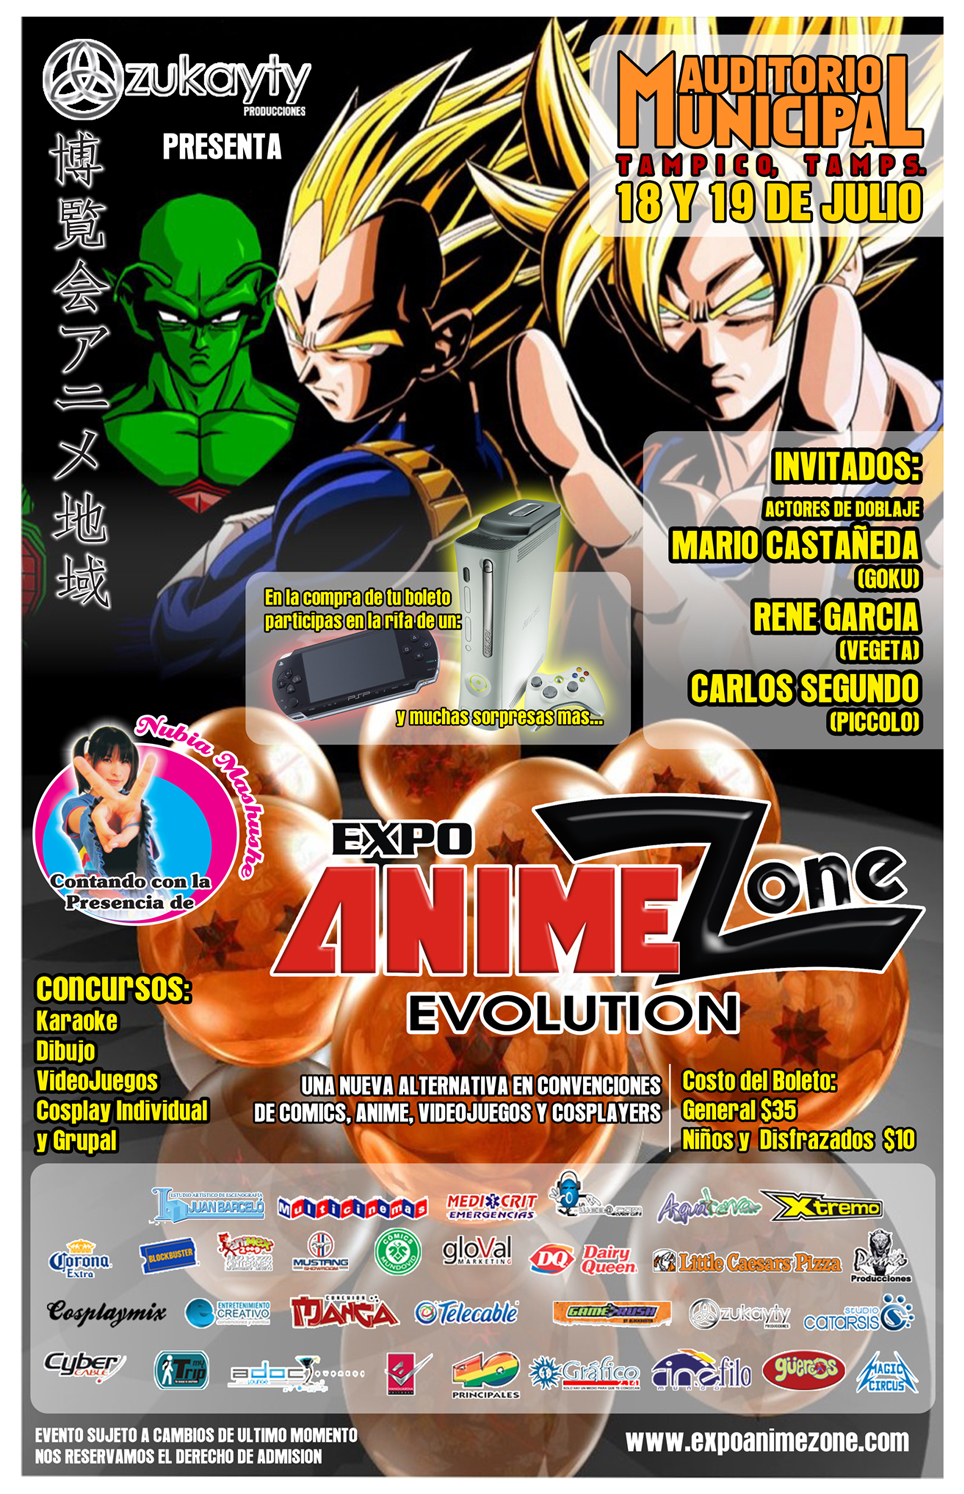 expoanimezone evolution